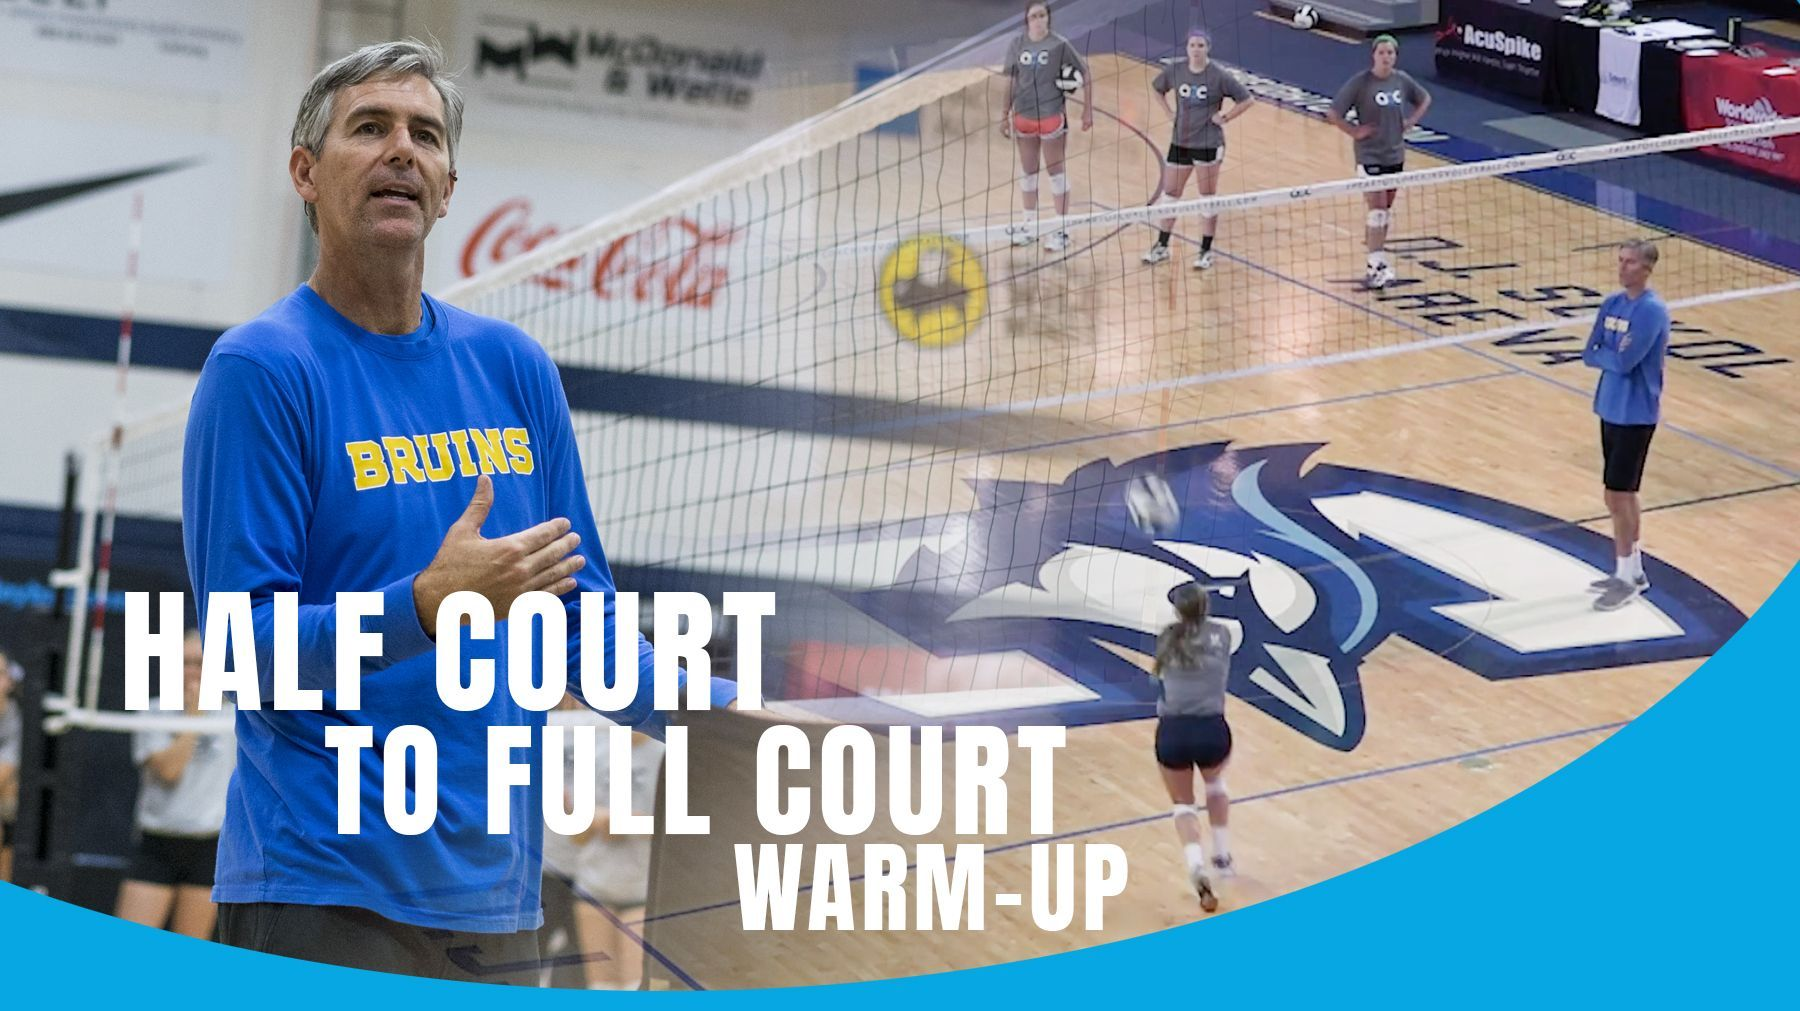 Half Court To Full Court Warm Up The Art Of Coaching Volleyball Basketball Workouts Coaching Volleyball Basketball